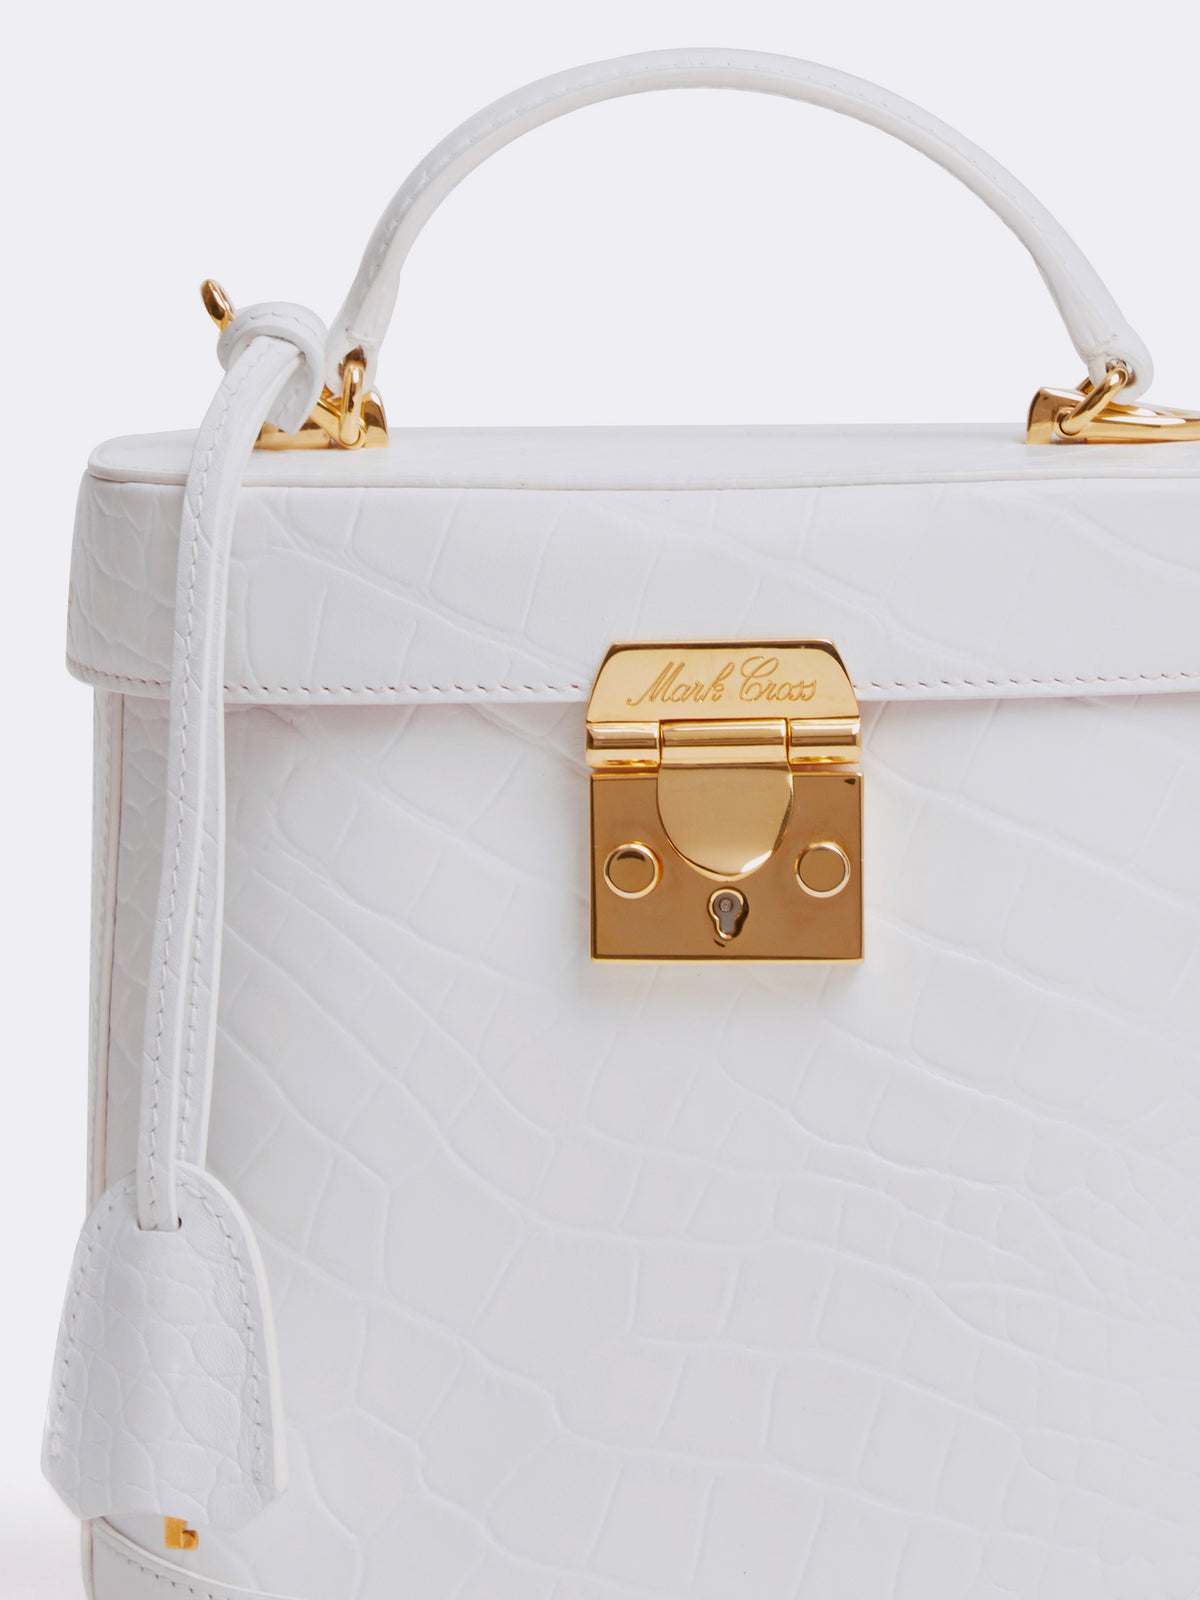 Mark Cross Benchley Leather Top Handle Bag Crocodile Stamped White Detail